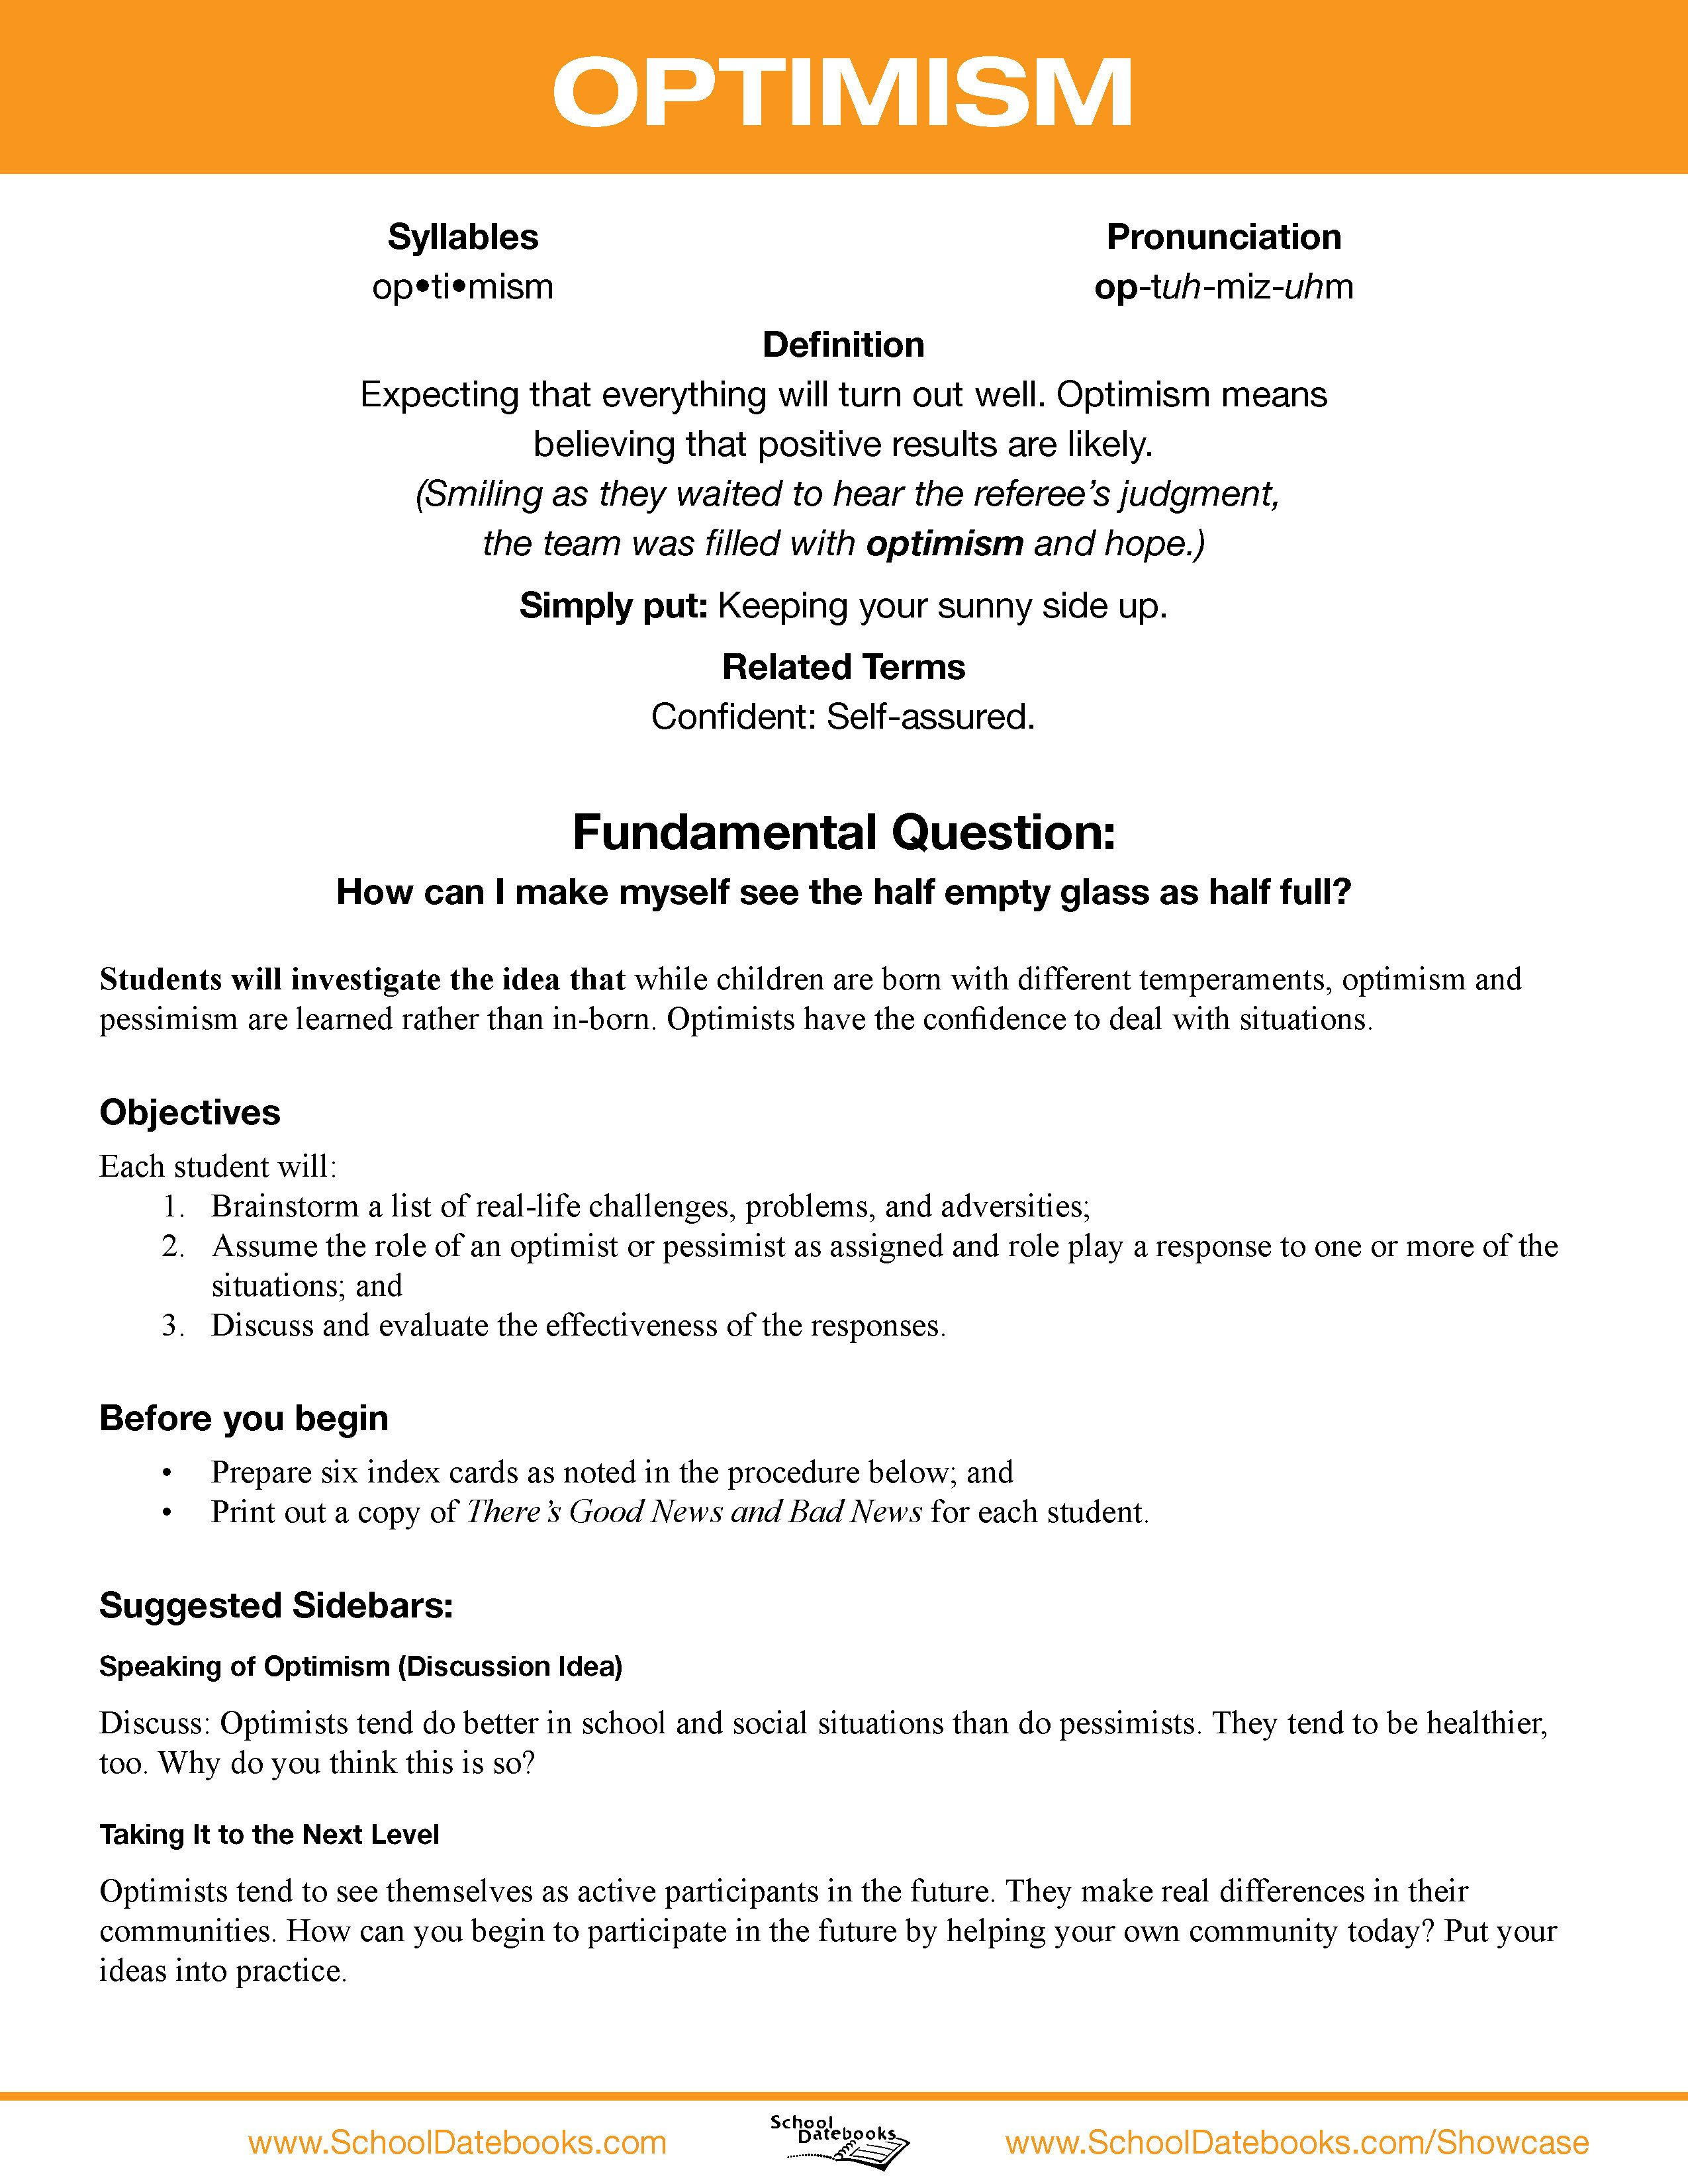 optimism character lesson plan free downloadable 52 total